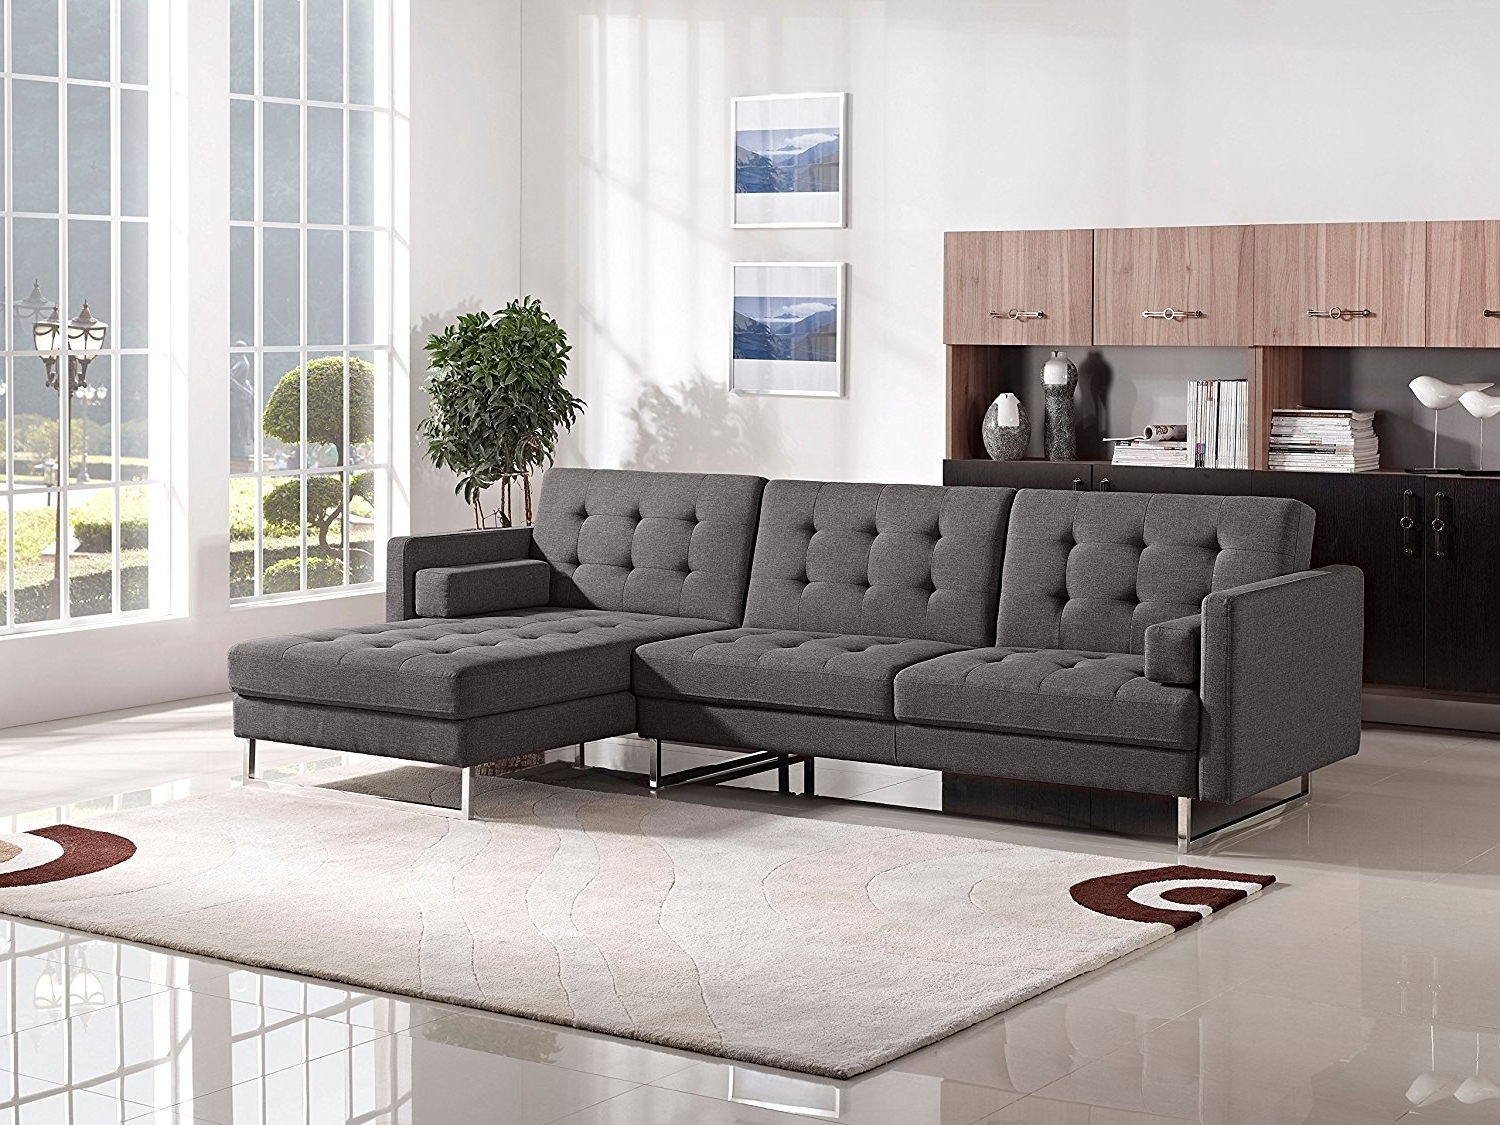 Tufted Sectional Sofas With Chaise Pertaining To Current Tufted Sectional Sofa With Chaise – Visionexchange (View 7 of 15)